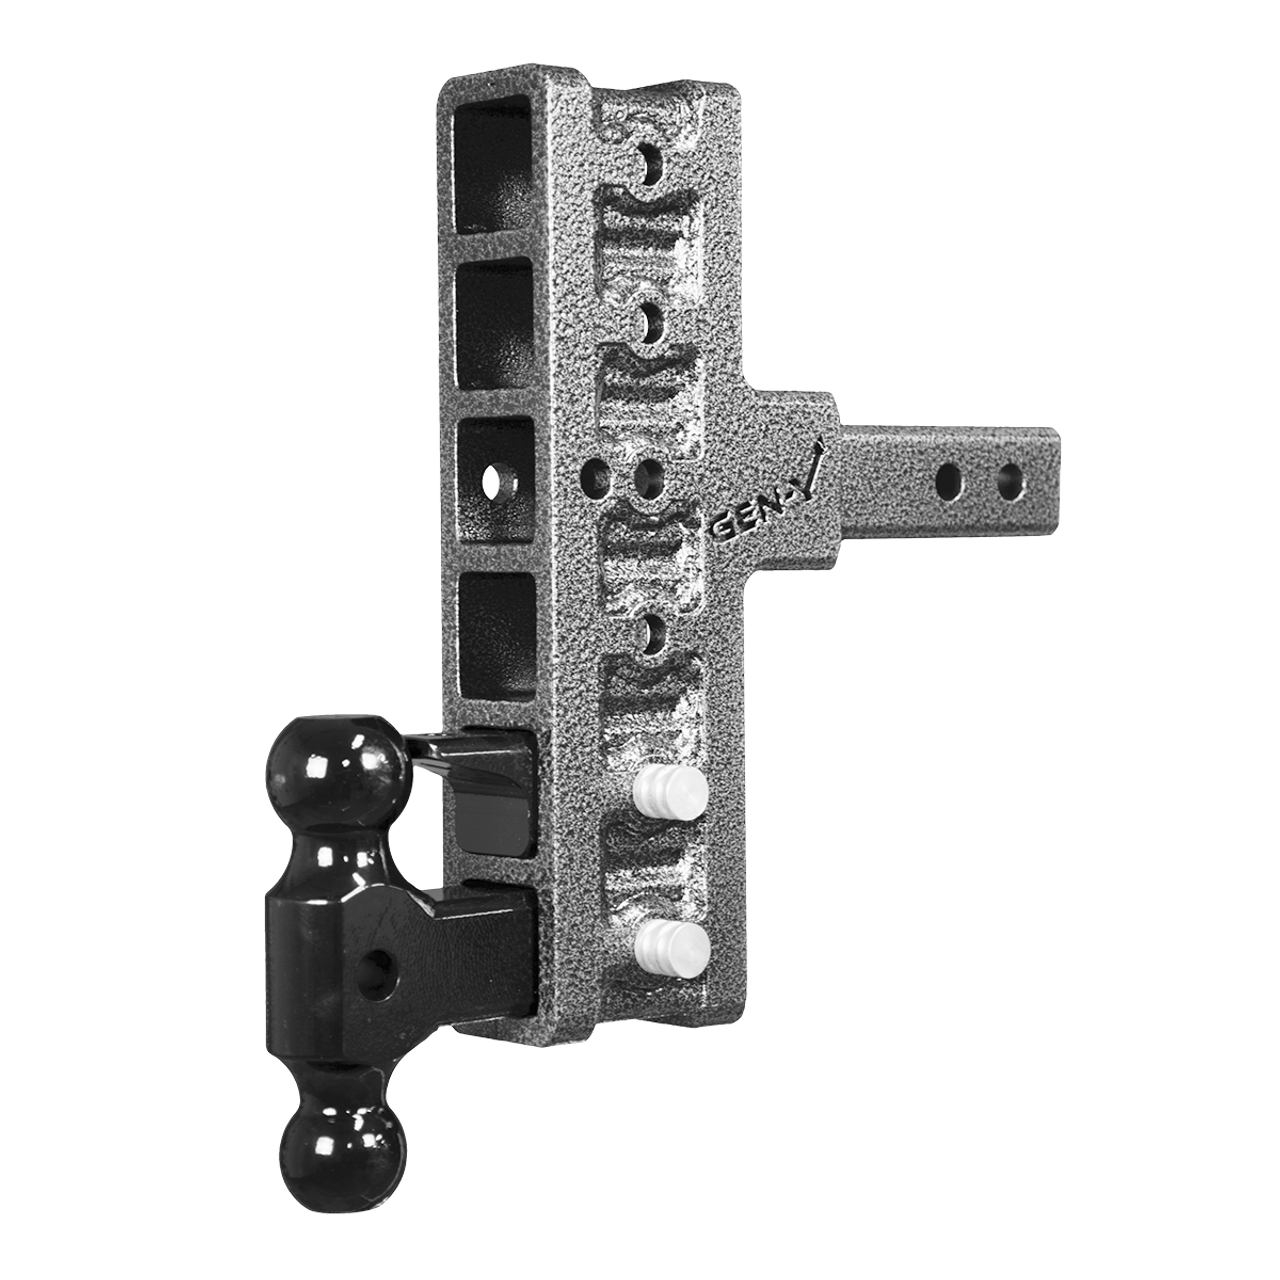 GH-226 --- Six Position Mega-Duty Offset Shank with Dual Ball and Pintle - 16,000 lb Capacity